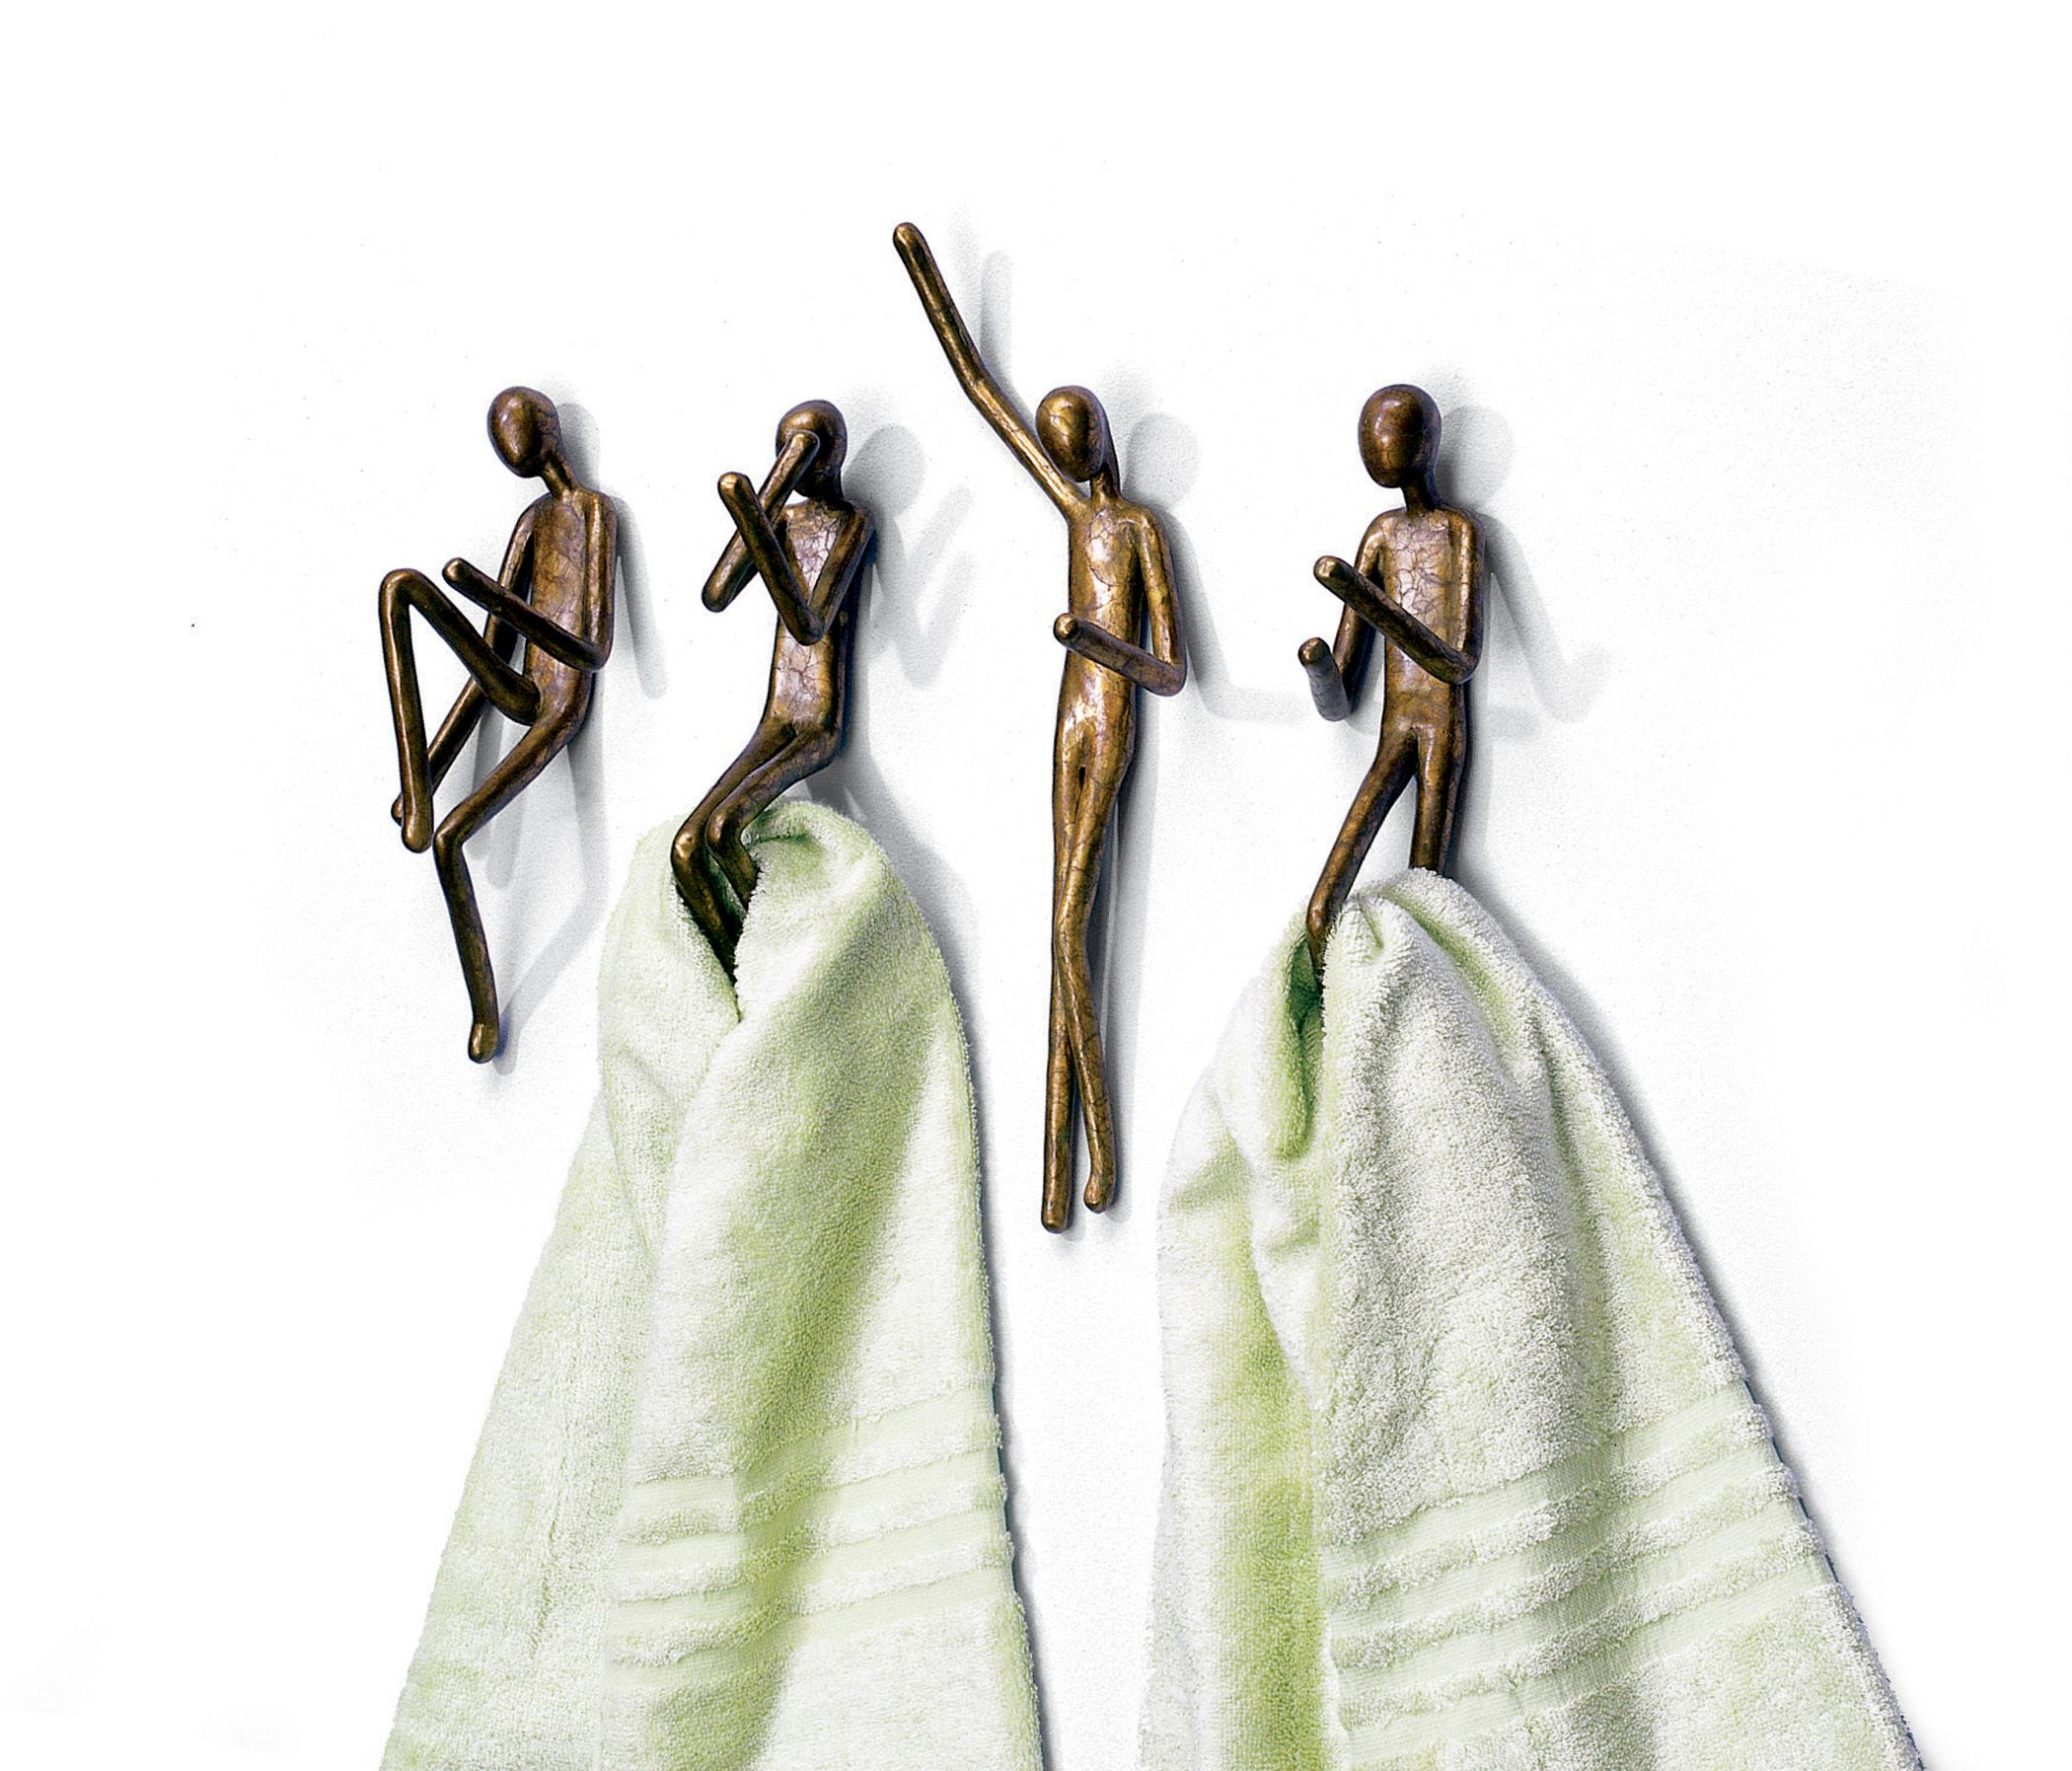 unique towel hooks, inspiring ideas photo natural unique